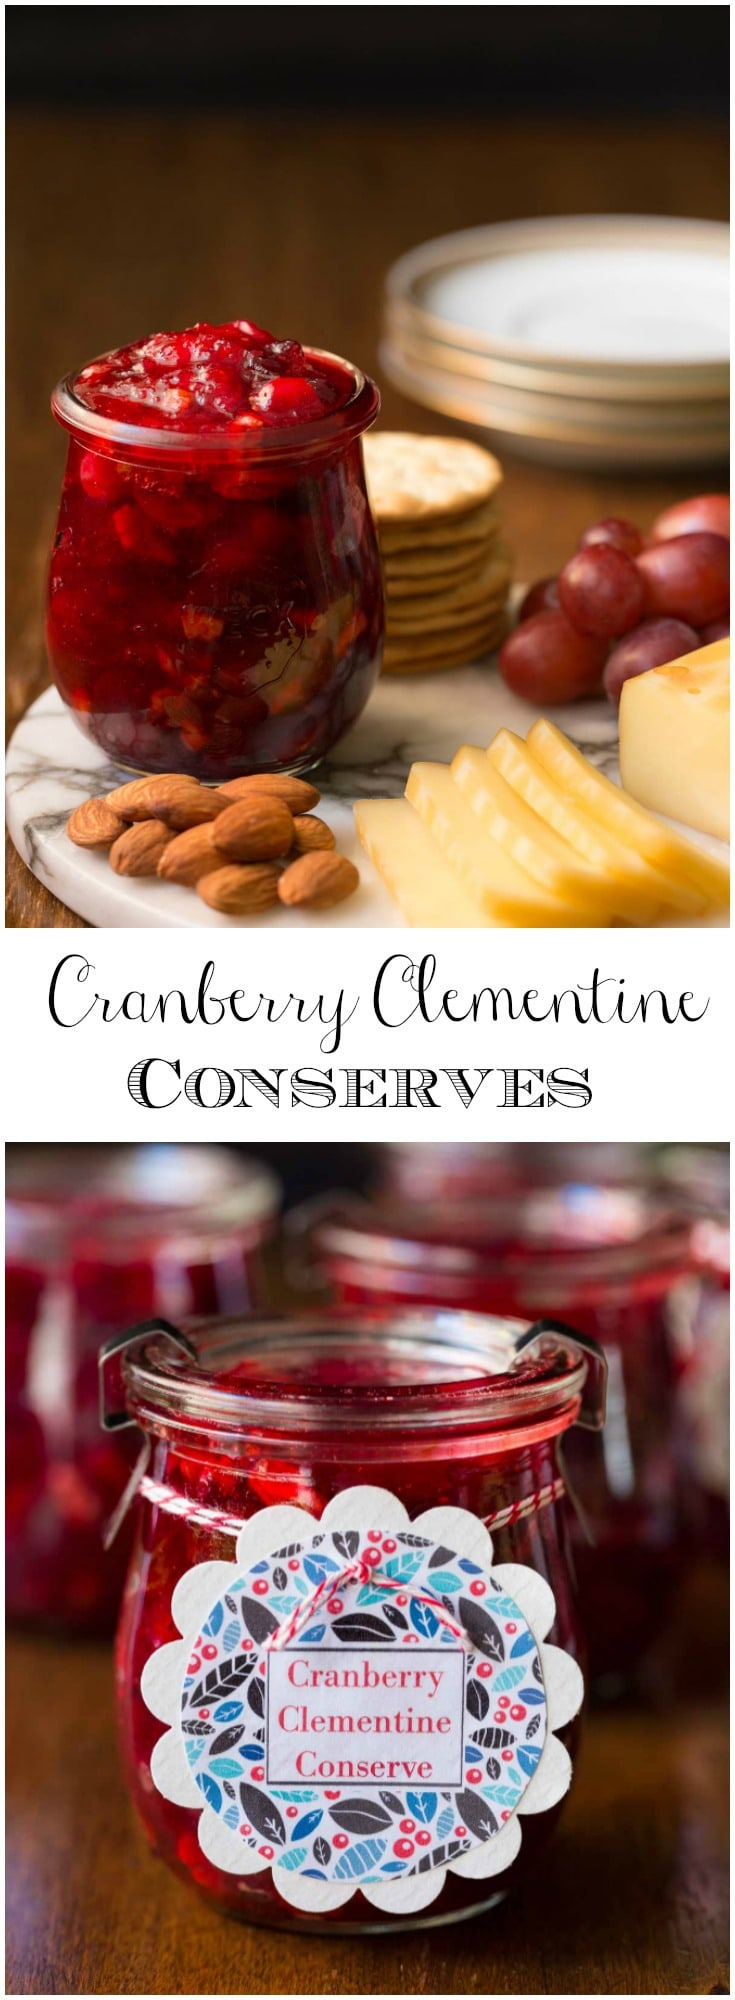 Keep a stash of these Cranberry Clementine Conserves handy for an easy and delicious appetizer. It's also fabulous for gift giving!